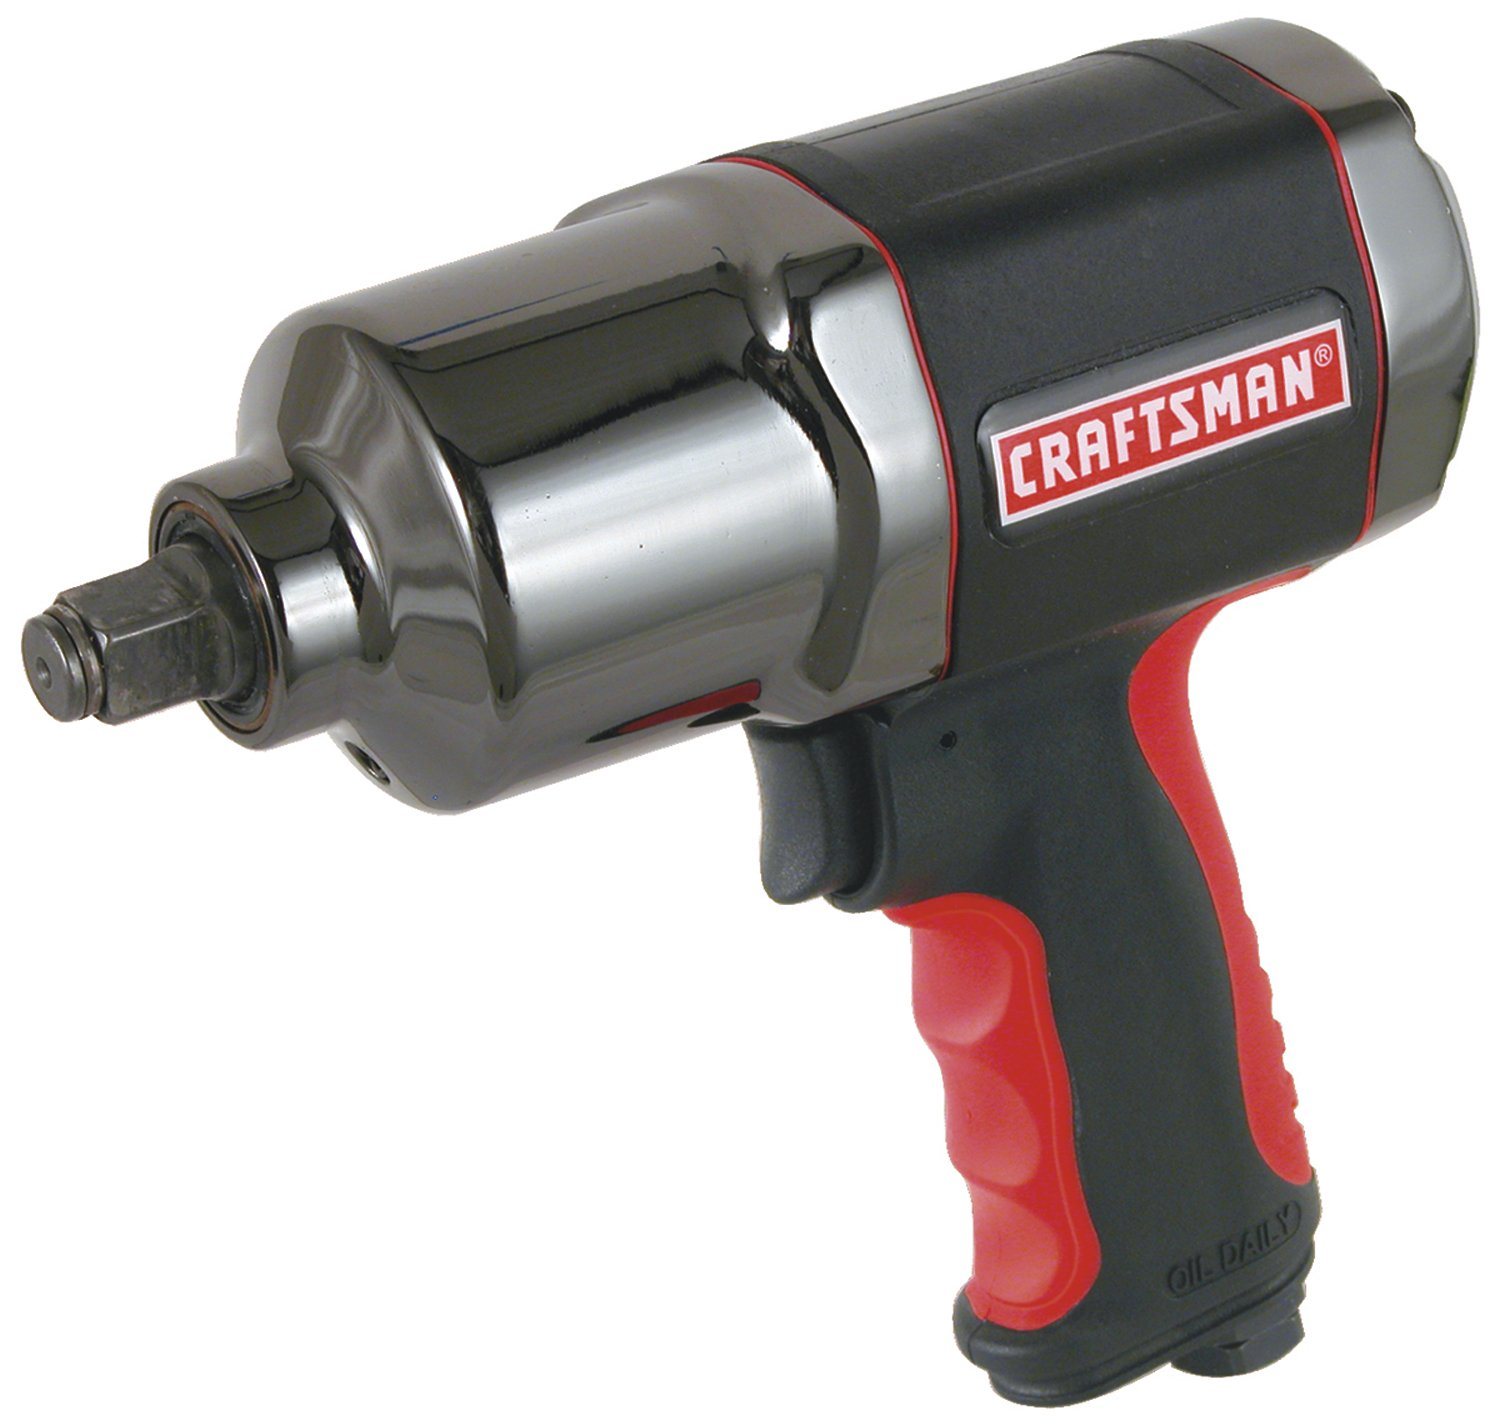 Craftsman 9-19984 1/2-Inch Heavy Duty Impact Wrench